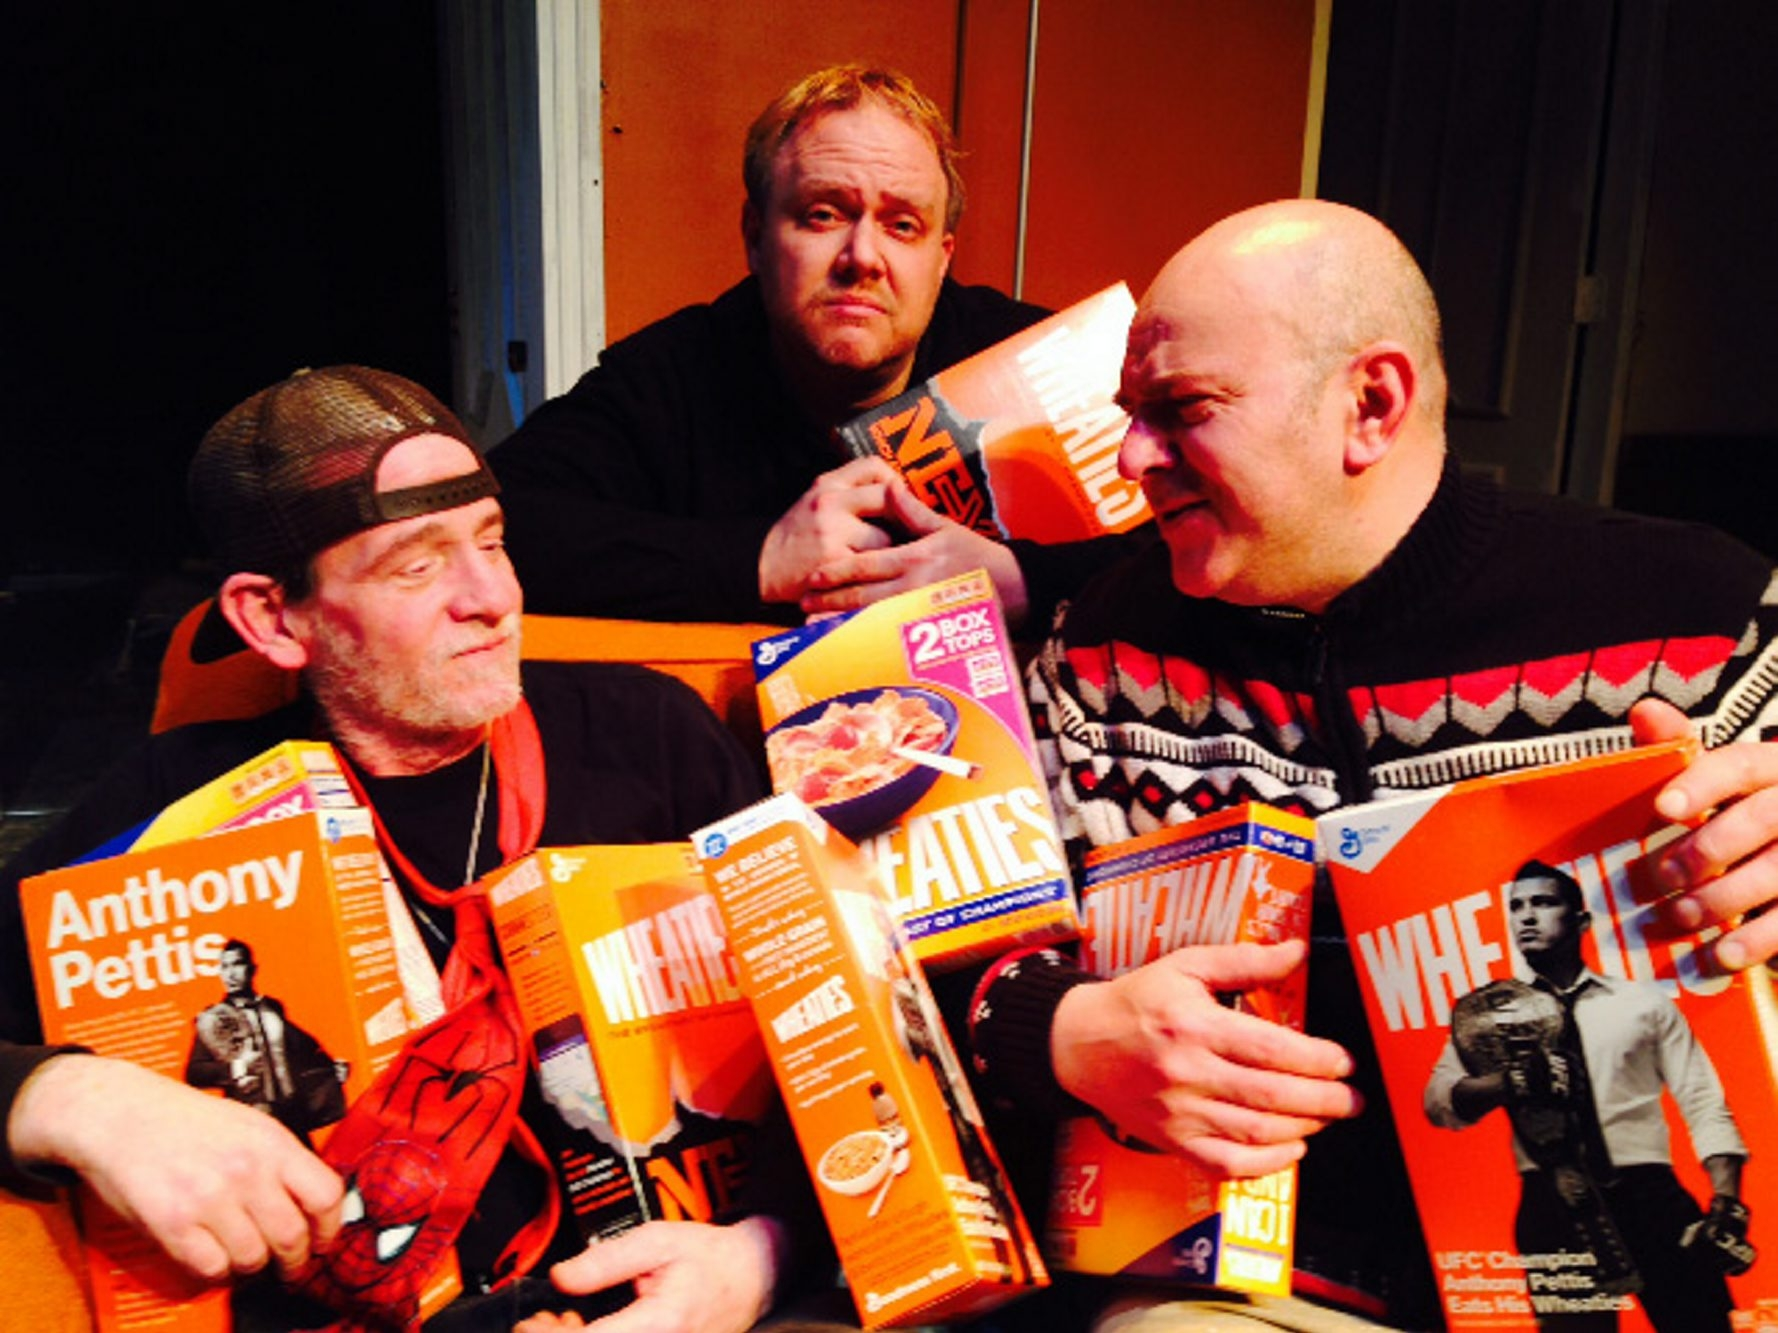 """From left, Jesse Swartz, Paul McGinnis and Carl Tamburlin star in the Starry Night Theatre troupe's production of """"The Boys Next Door,"""" which runs May 7 to 24 at Ghostlight Theatre in North Tonawanda."""